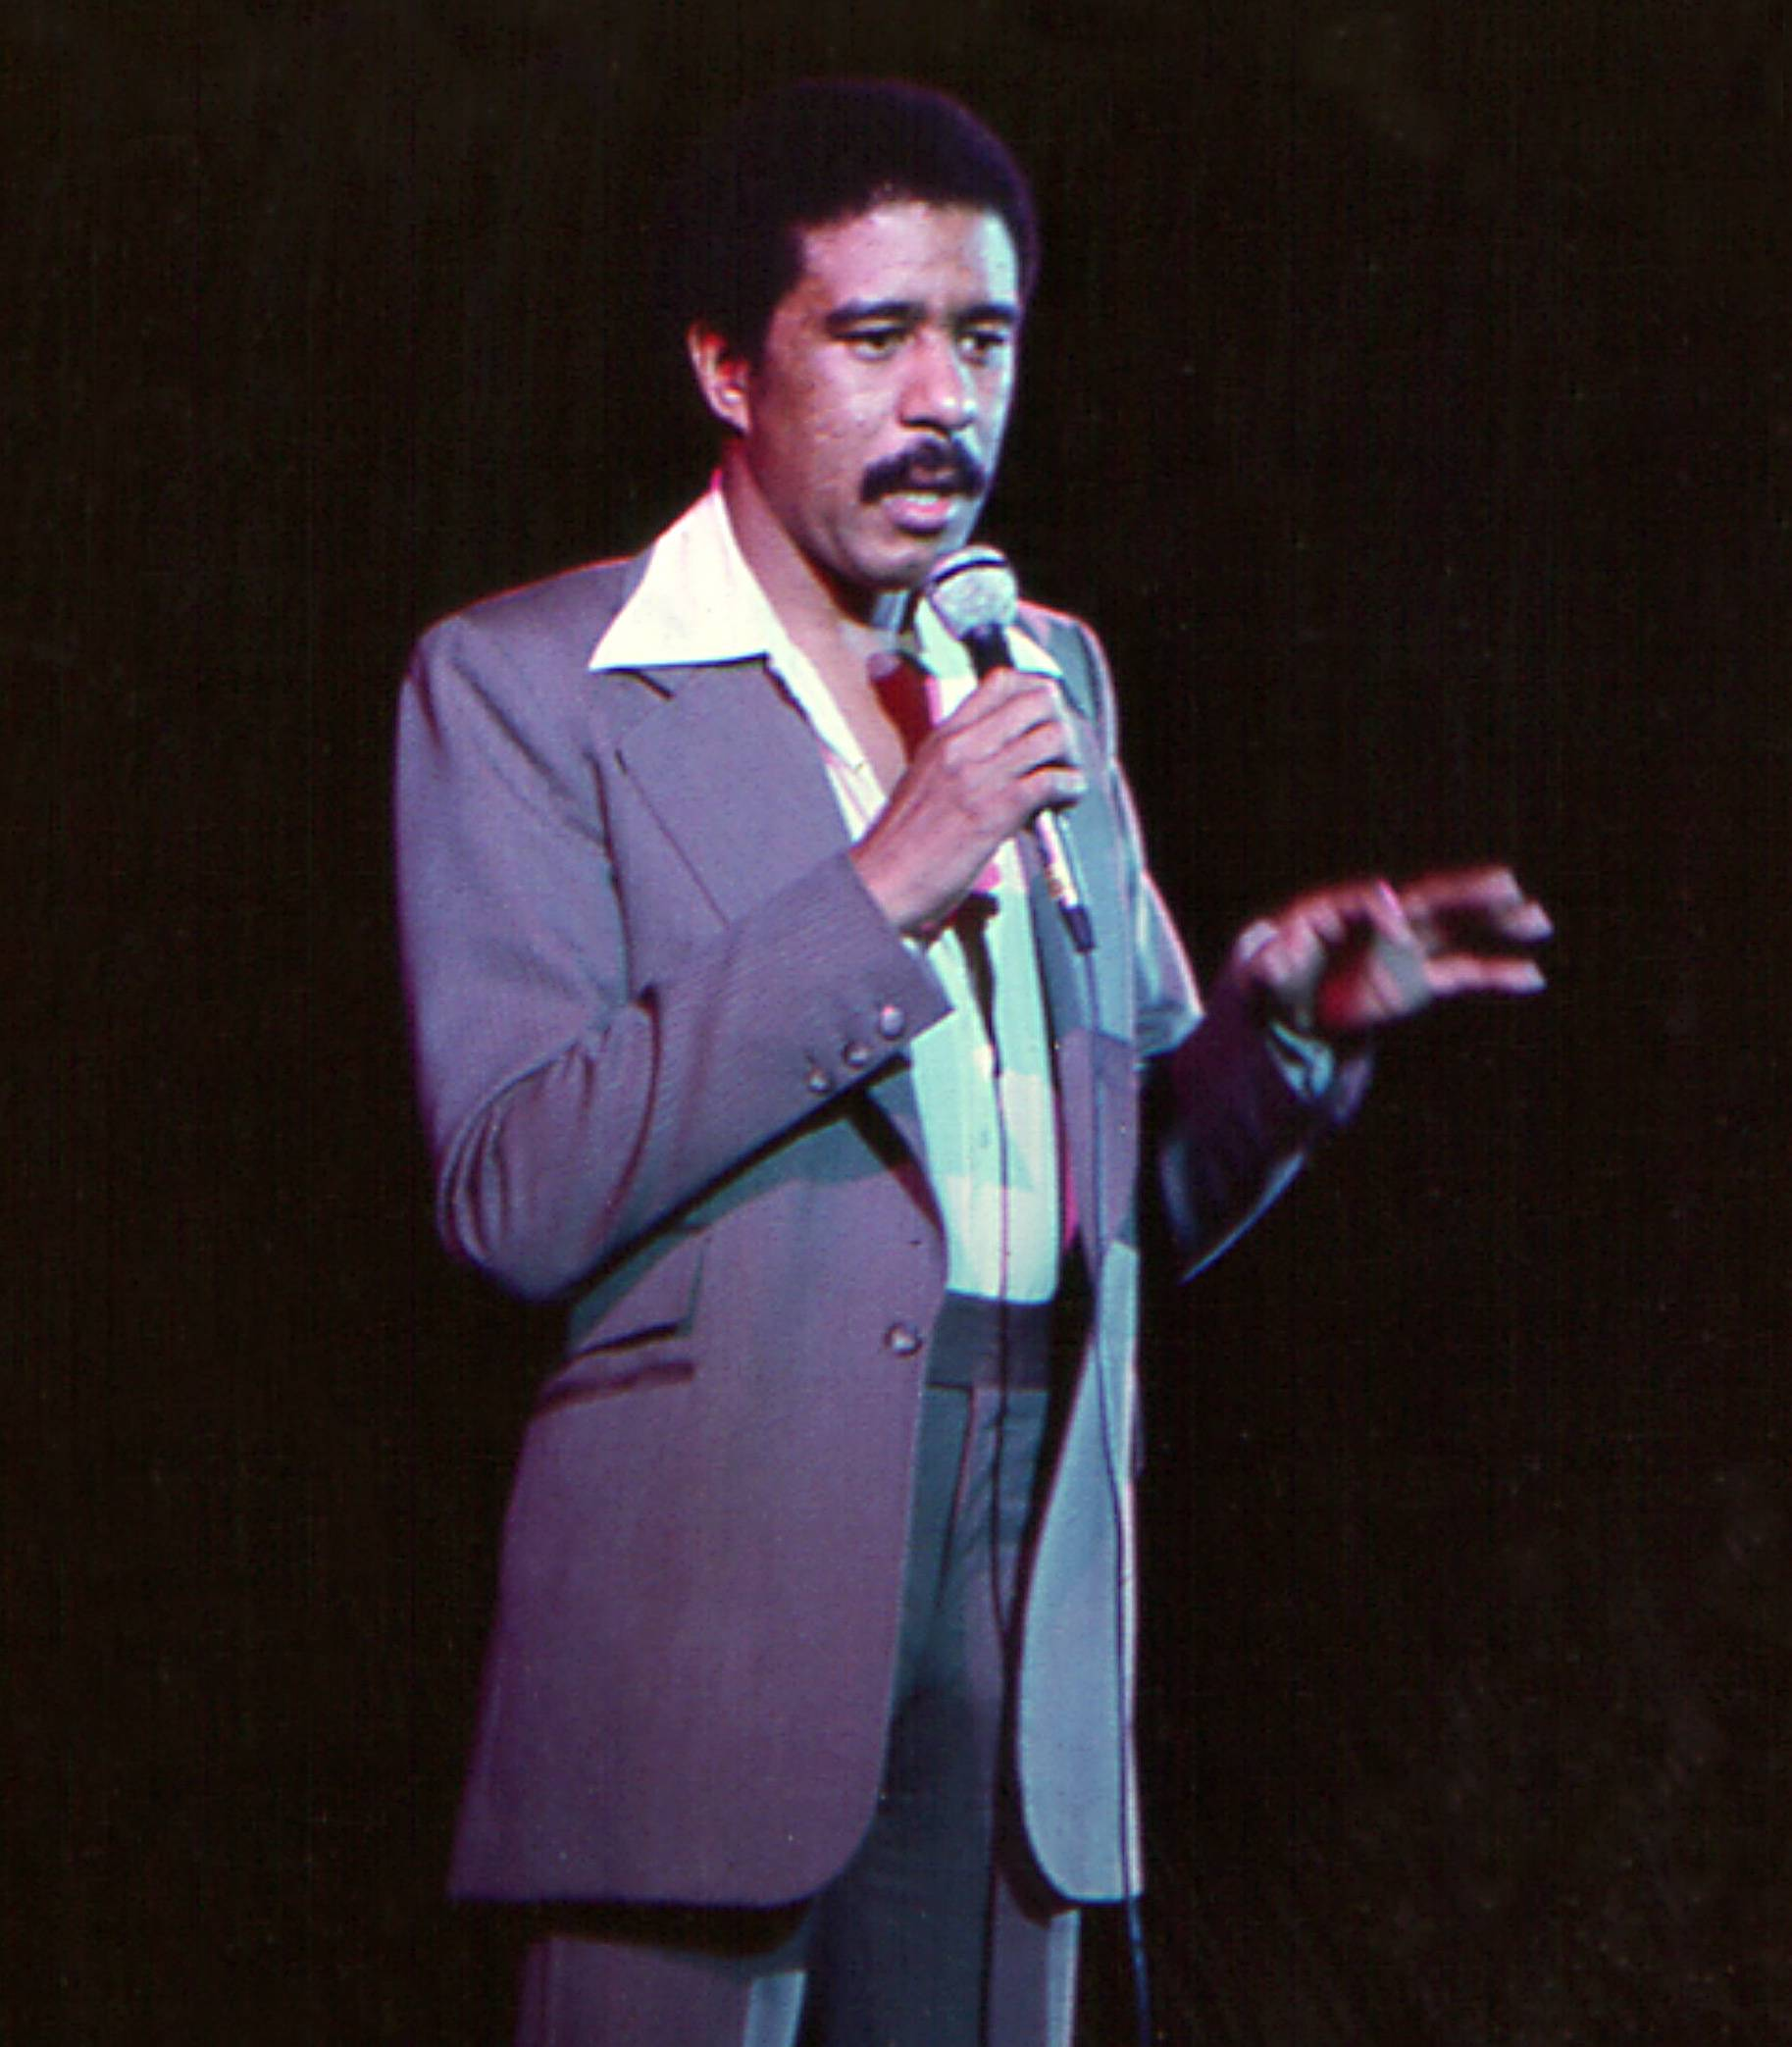 Richard Pryor - In a time when racial tensions were high, Richard Pryor used comedy to get a point across to his audience. One of the places that he did this was on the Apollo stage.(Photo: Michael Ochs Archives/Getty Images)